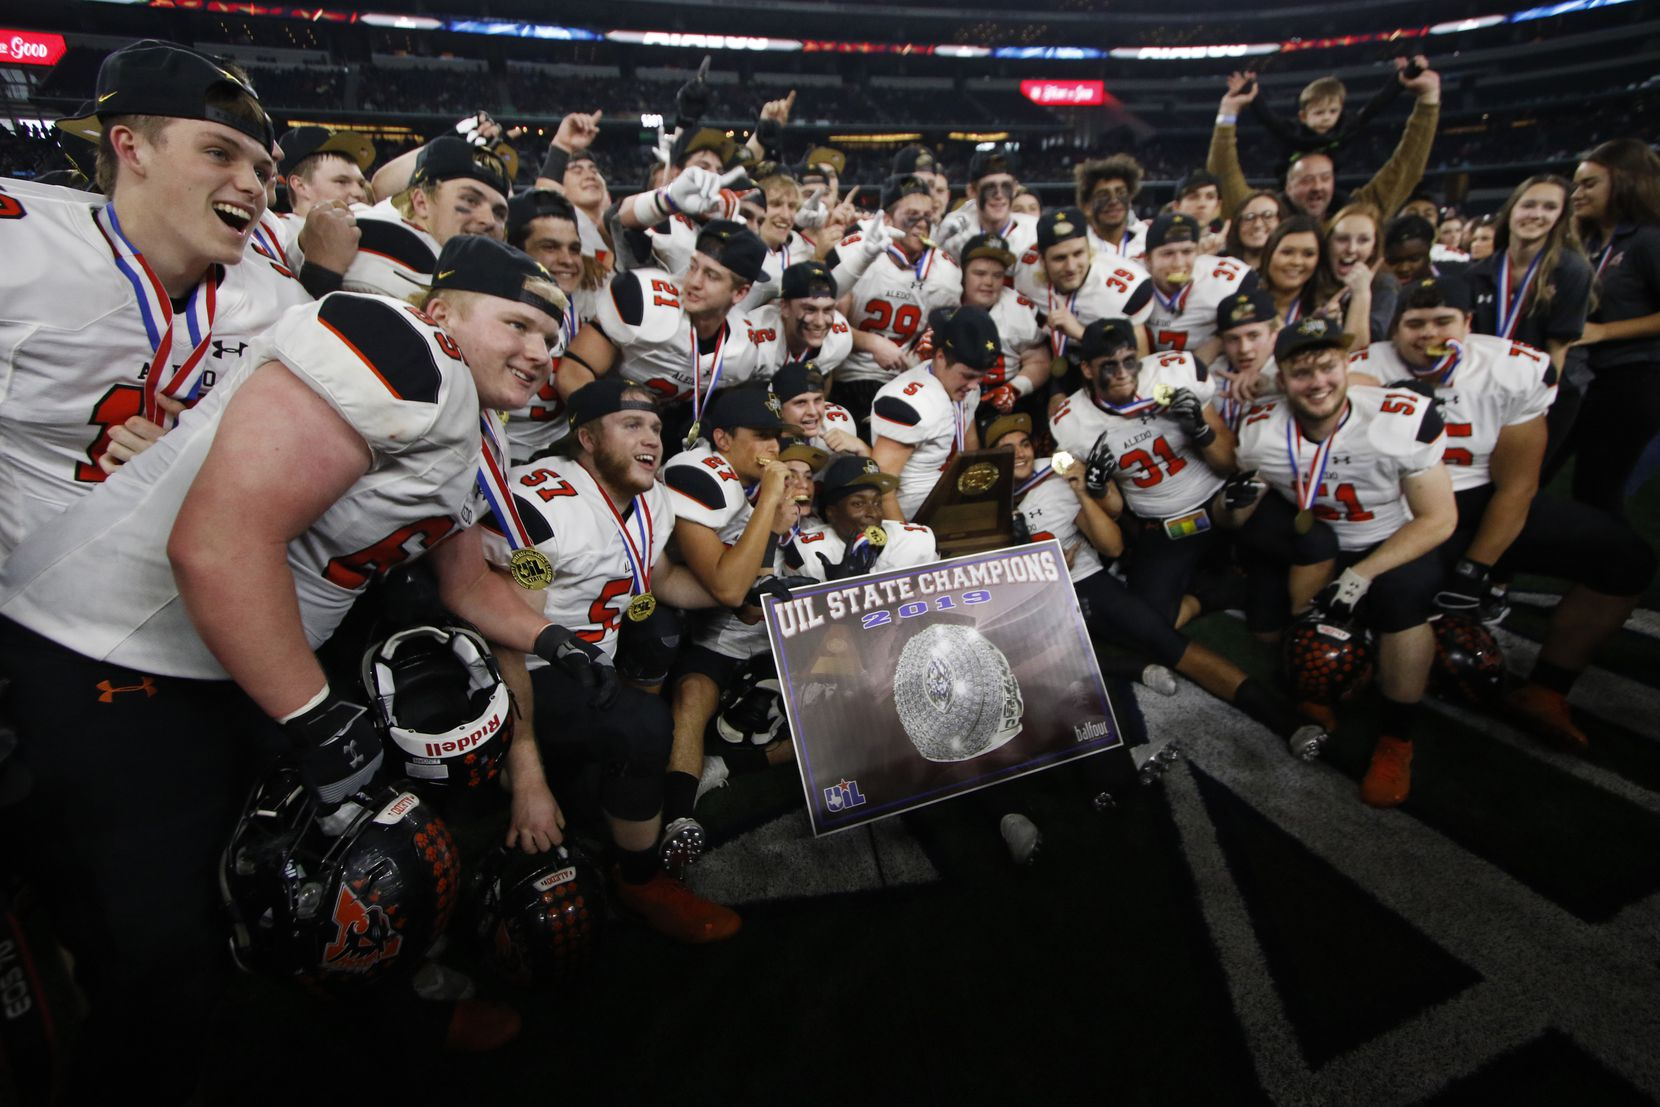 Members of the Aledo Bearcats pose for a photo with their medals and championship trophy following their 45-42 victory over Fort Bend Marshall to capture the state championship. The two teams played their Class 5A Division ll state championship football game at AT&T Stadium  in Arlington on December 21, 2019. (Steve Hamm/ Special Contributor)